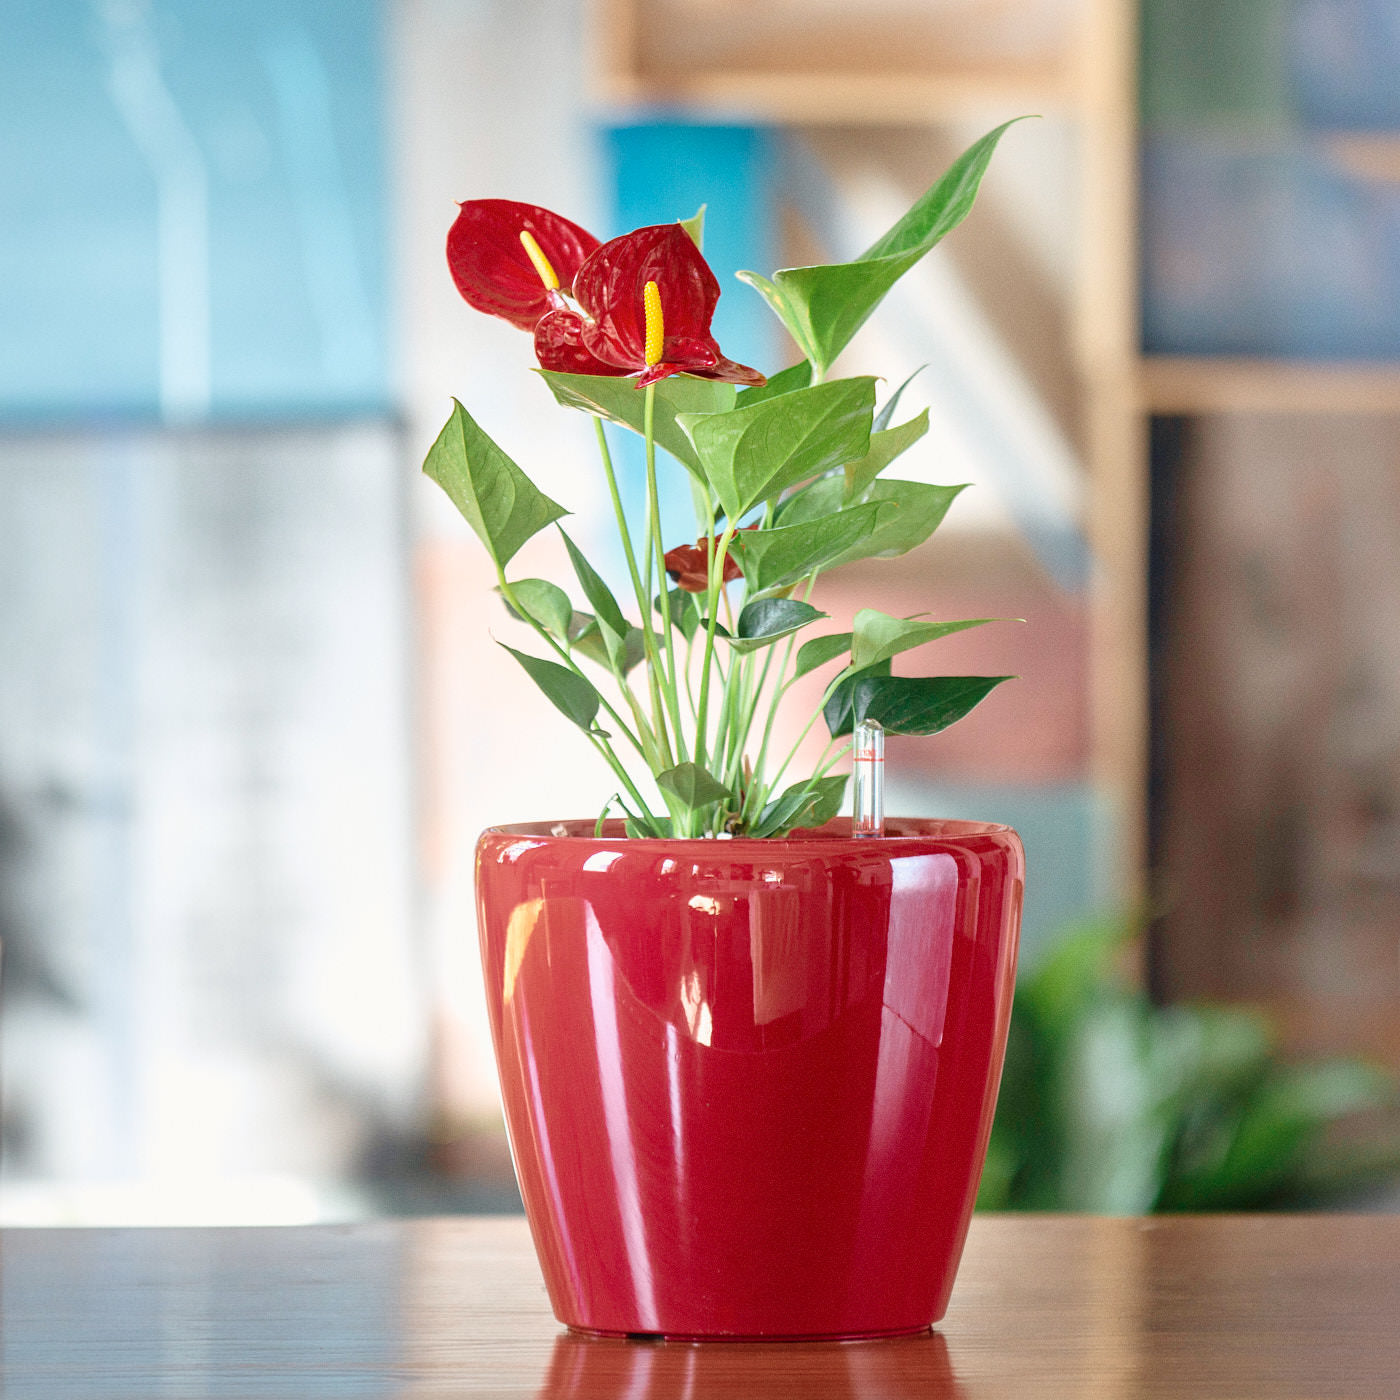 Anthurium Plant Potted In Lechuza Red Planter | My City Plants